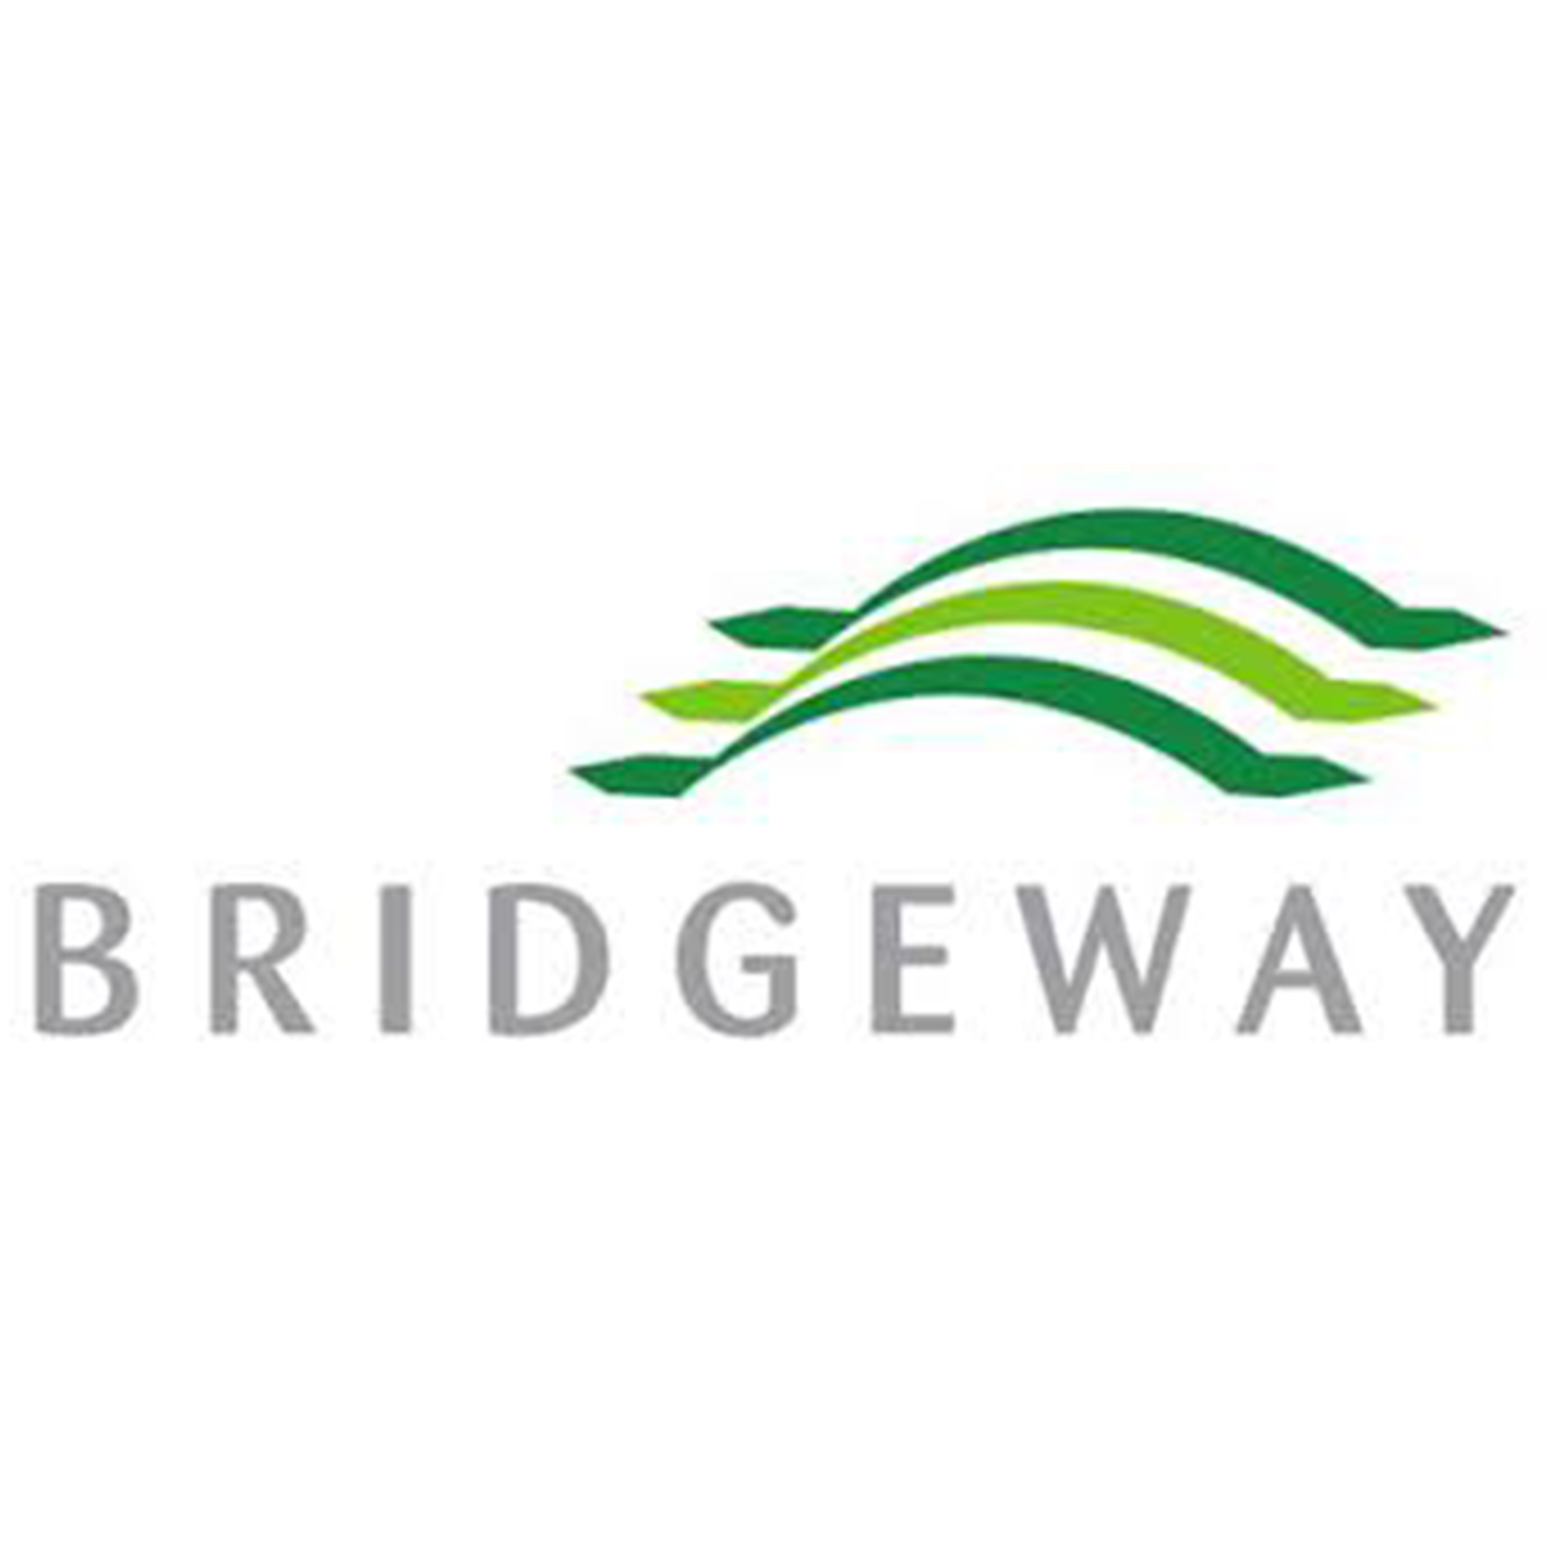 Bridgeway Capital Management